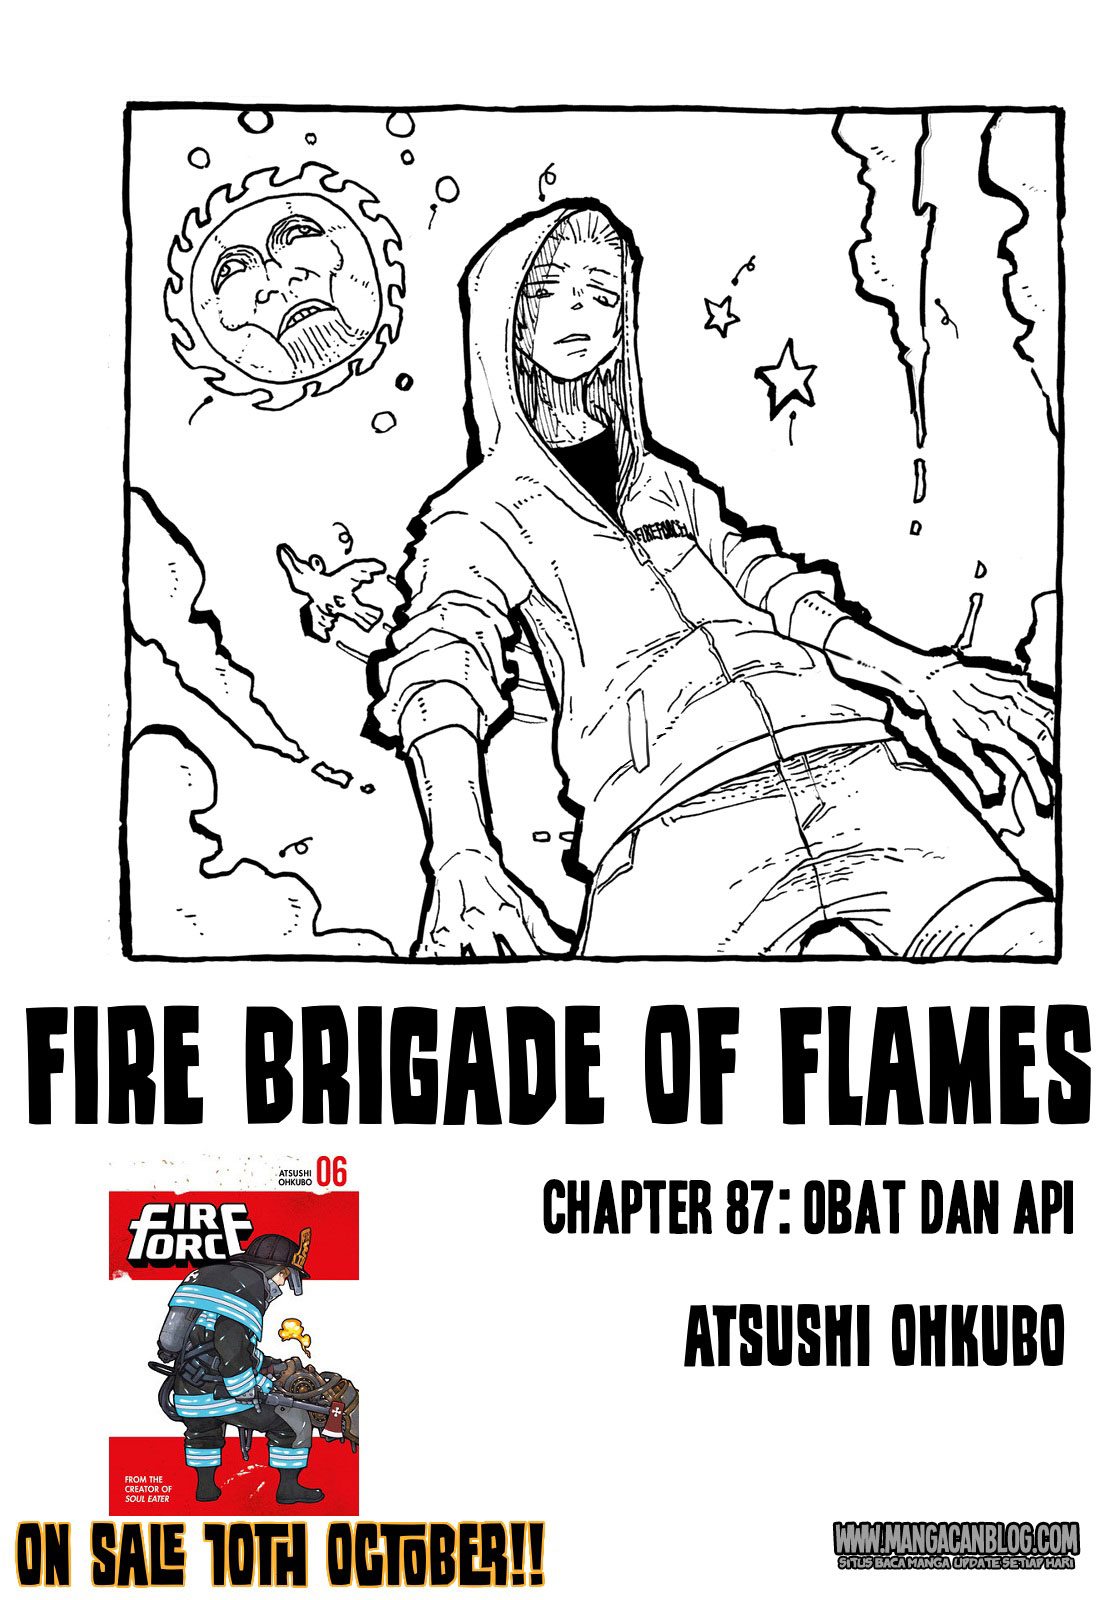 Fire Brigade of Flames Chapter 87